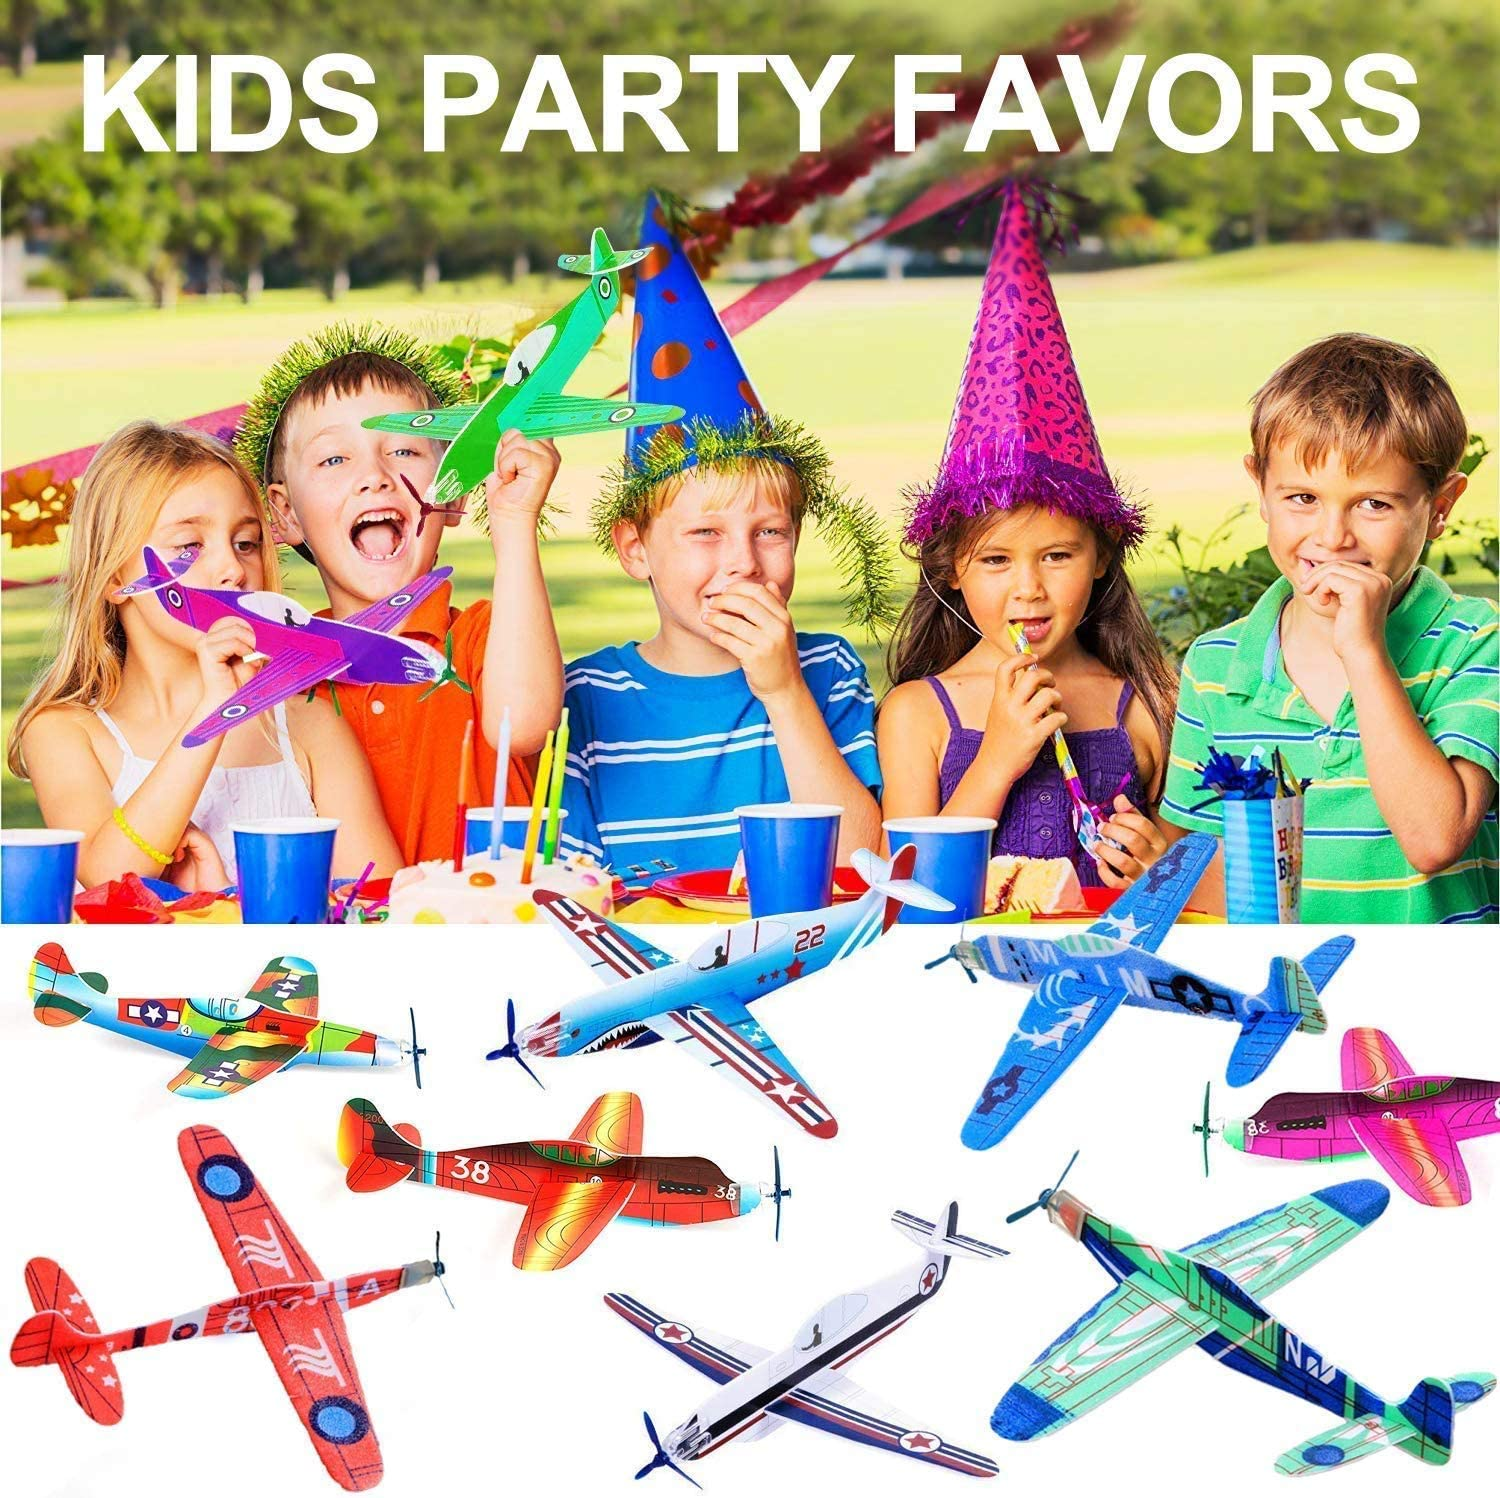 36 Pack Flying Glider Planes 8 inch Foam Airplane Novelty Flying Toys for Boys Girls Easter Gifts for Kids Classroom Rewards Prizes Caht Foam Air Planes Fun Gift for Kids Birthday Party Favor Supplies